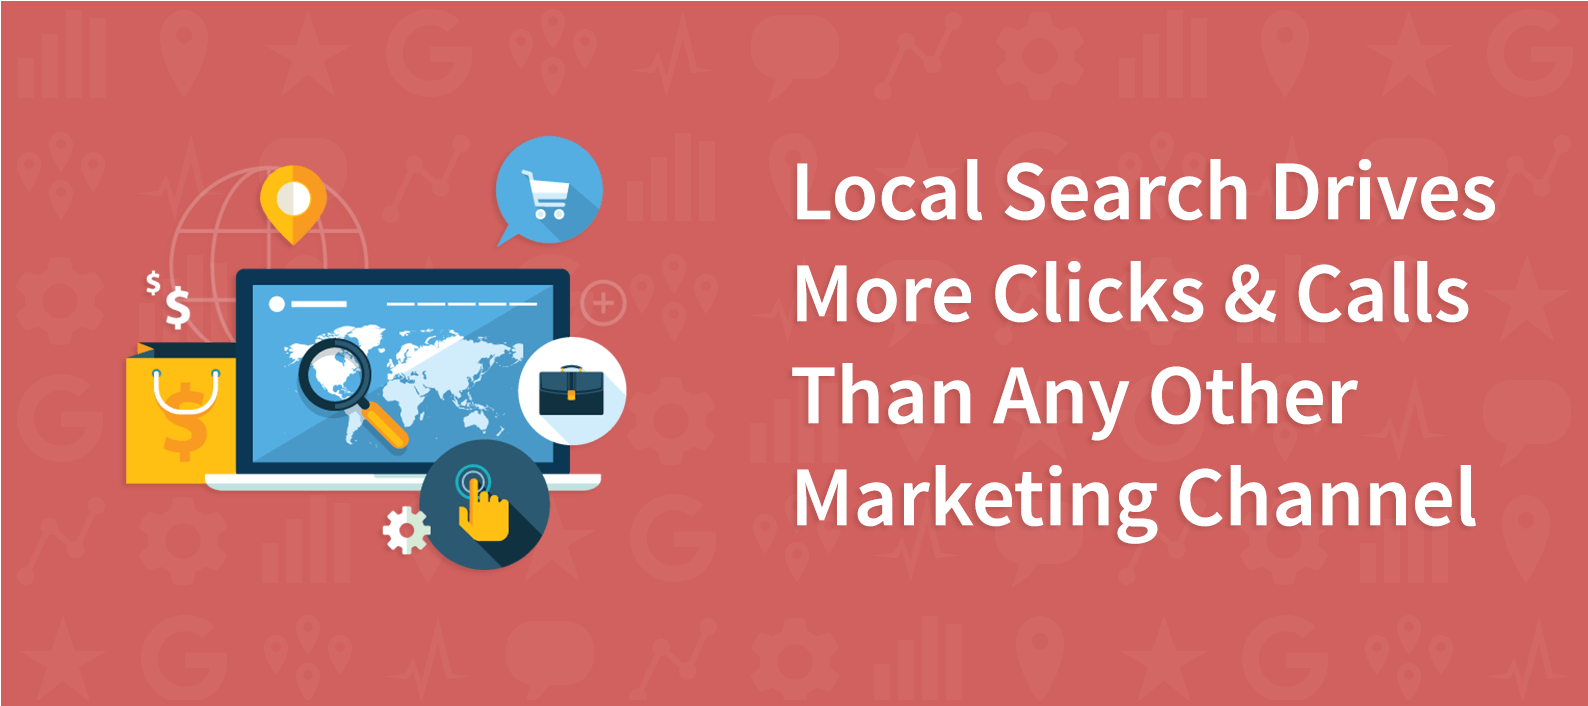 Local Search Drives More Clicks & Calls Than Any Other Marketing Channel